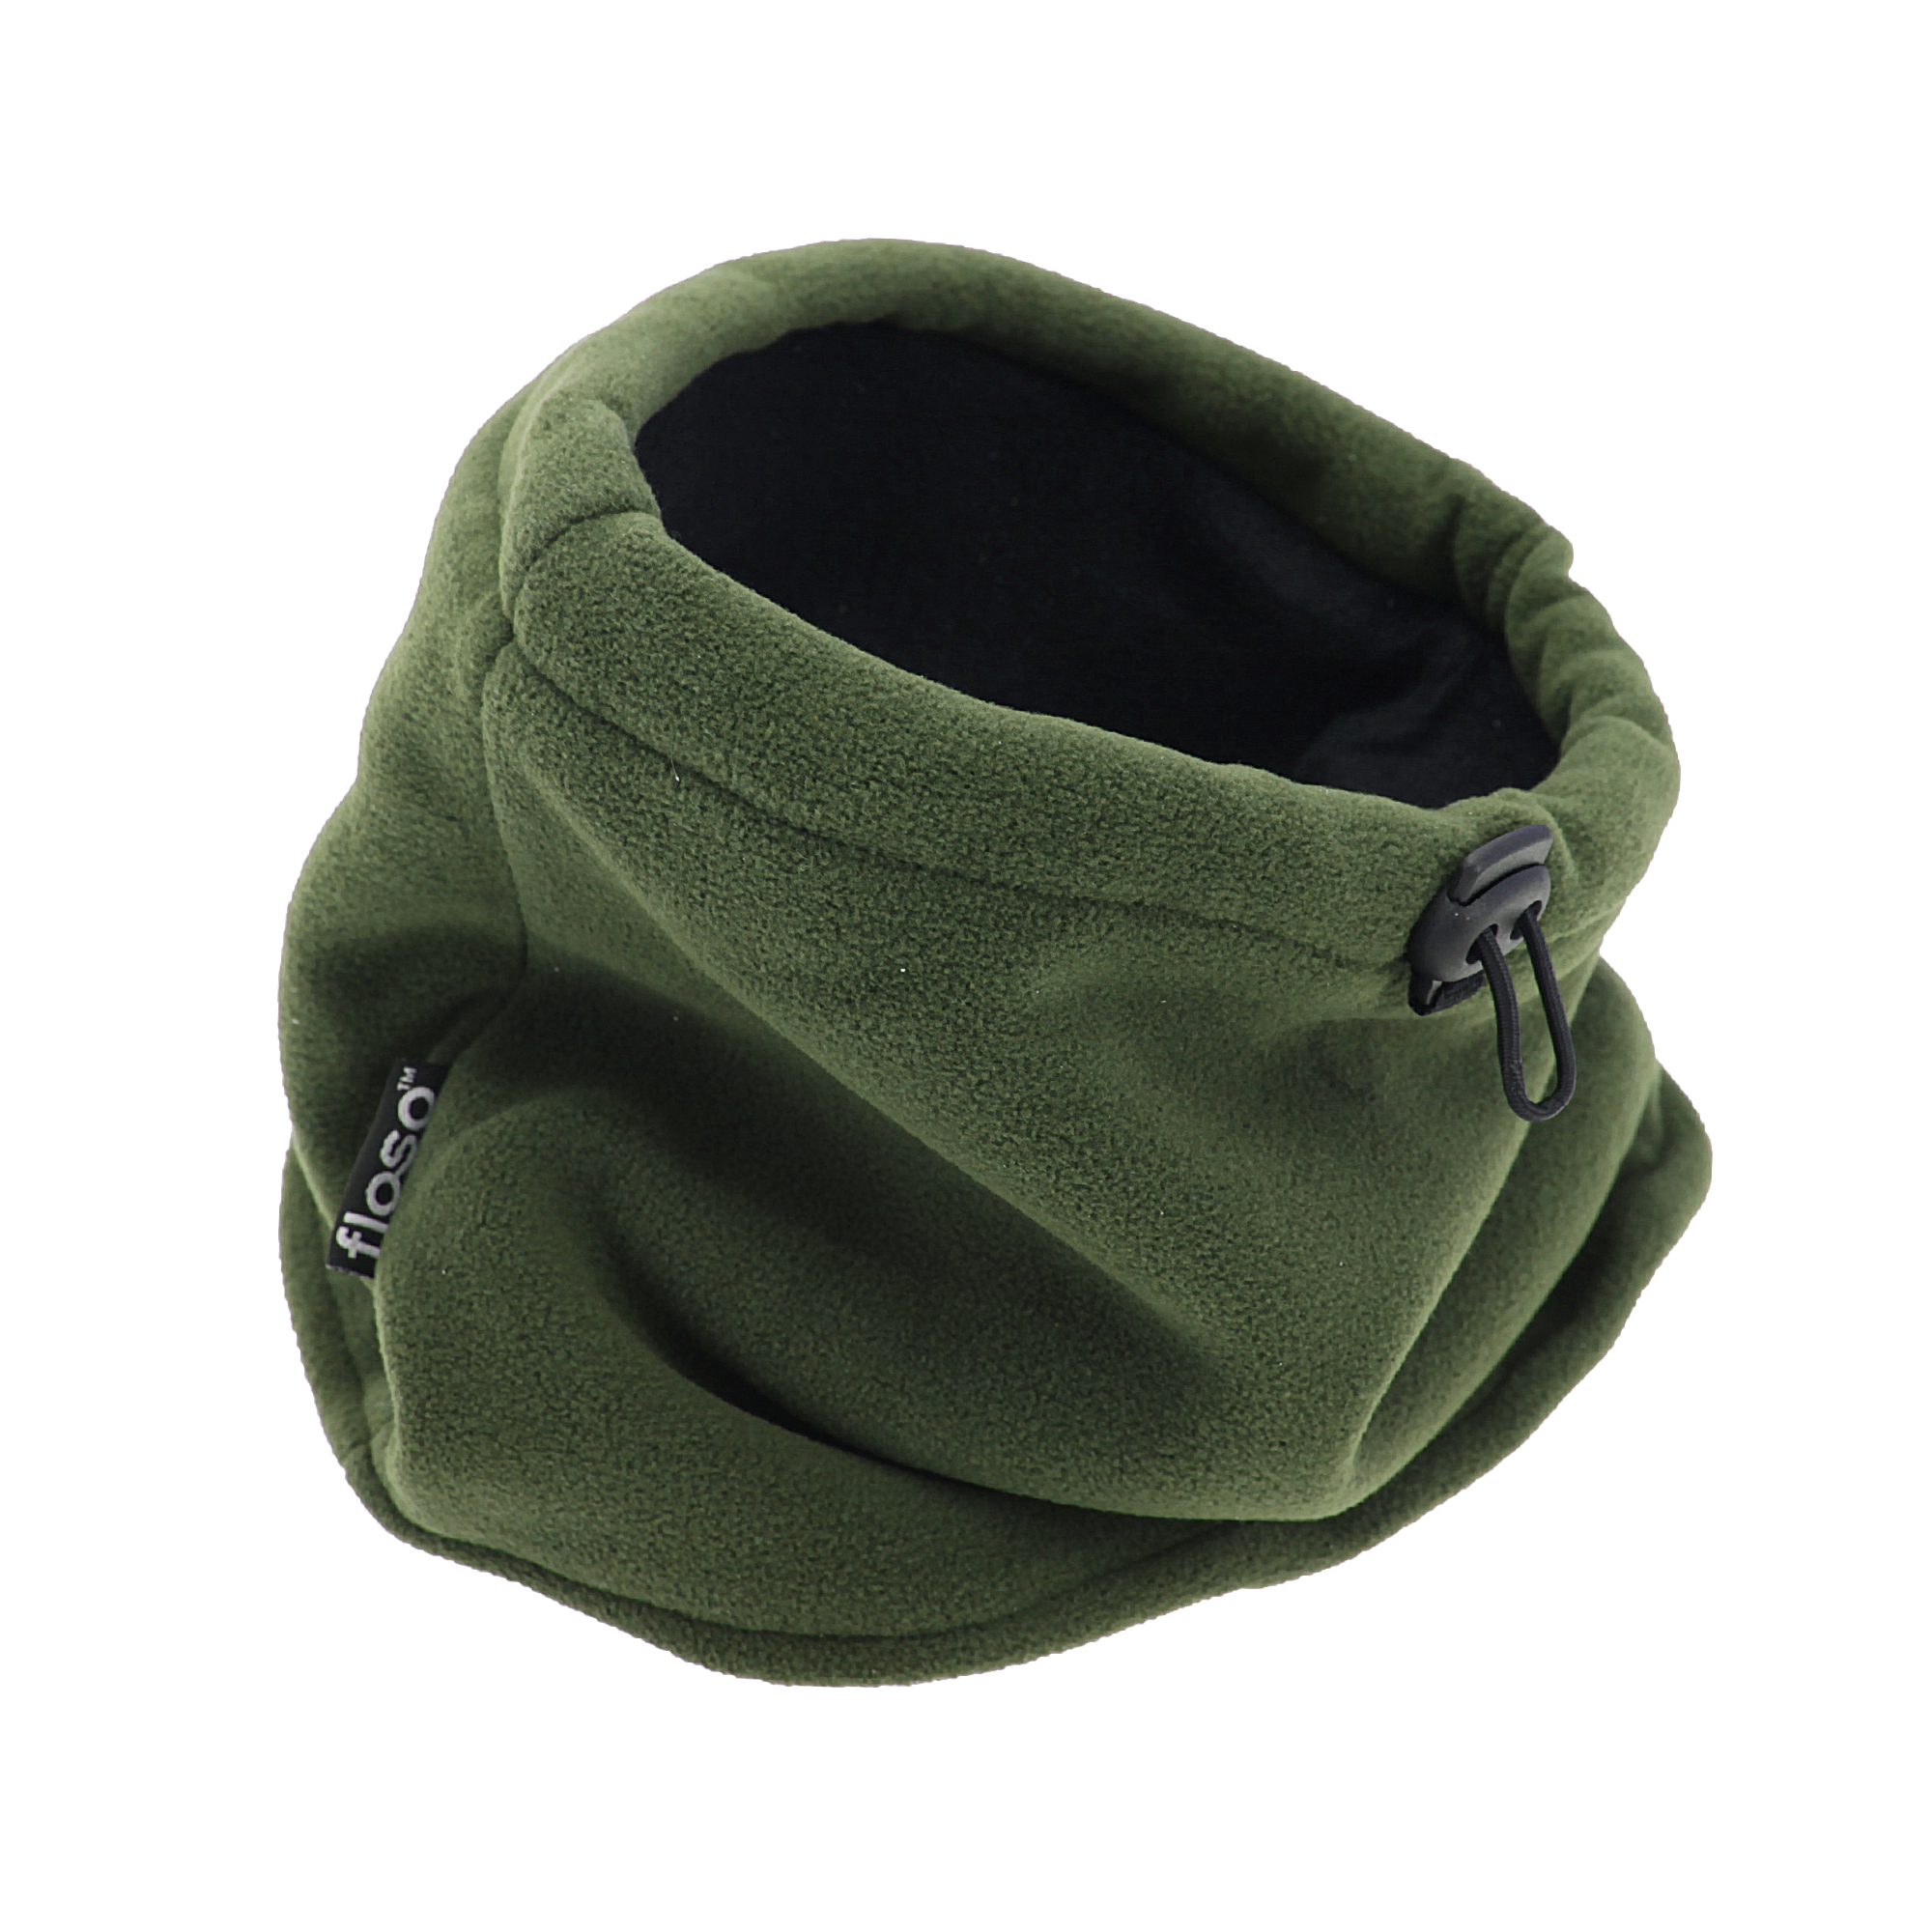 FLOSO Mens Fleece Thermal Winter Neck Snood (One Size) (Olive)